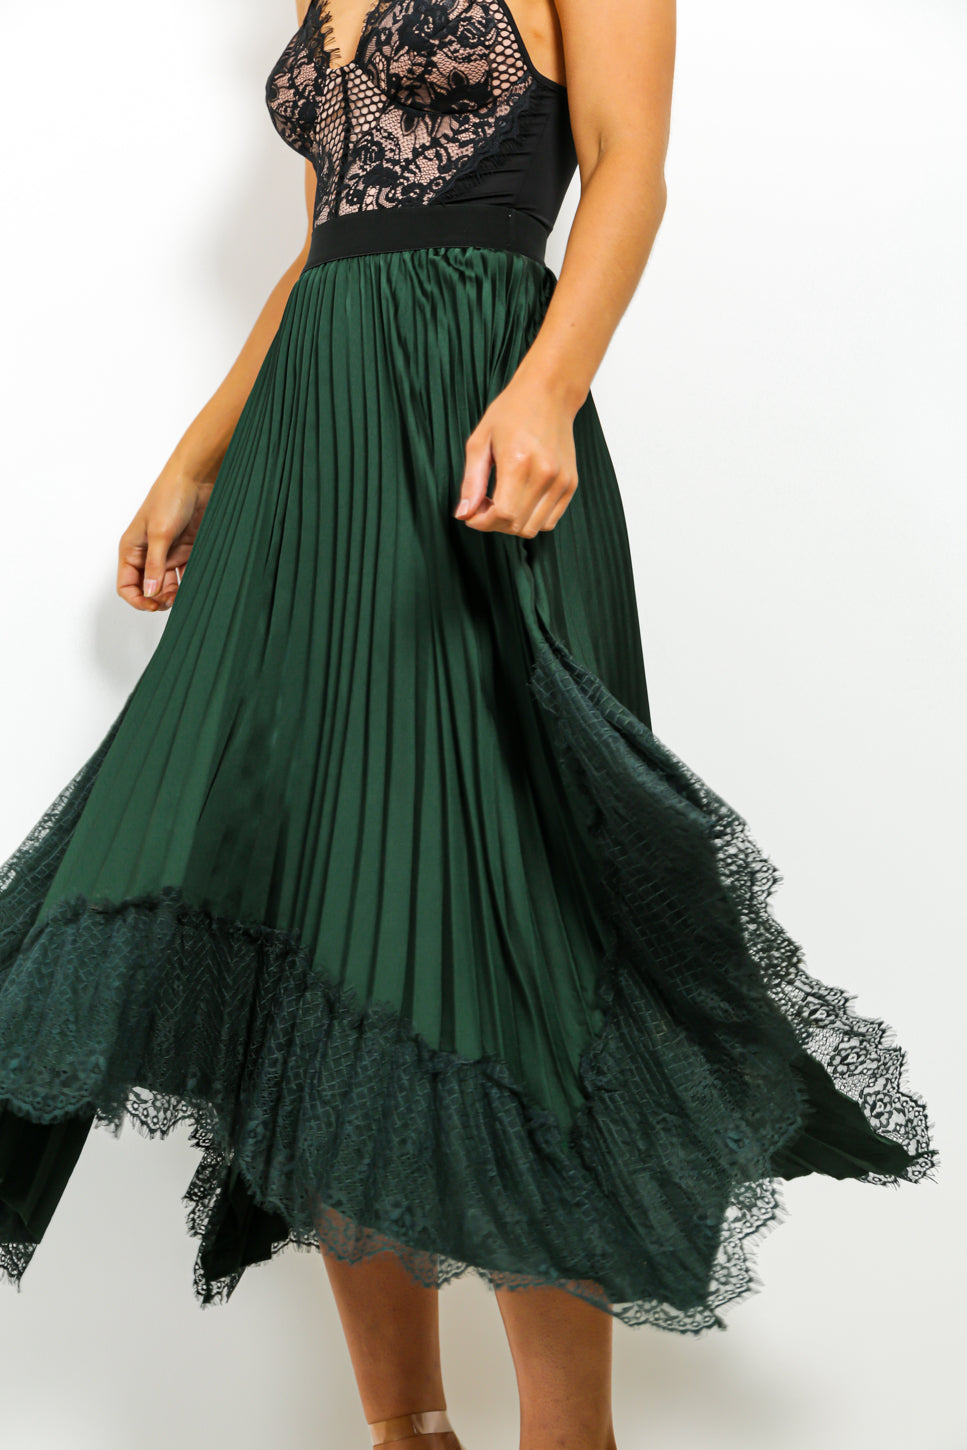 https://cdn.shopify.com/s/files/1/0062/6661/7925/files/product-video-in-the-pleat-of-the-moment-skirt-in-forest.mp4?6445